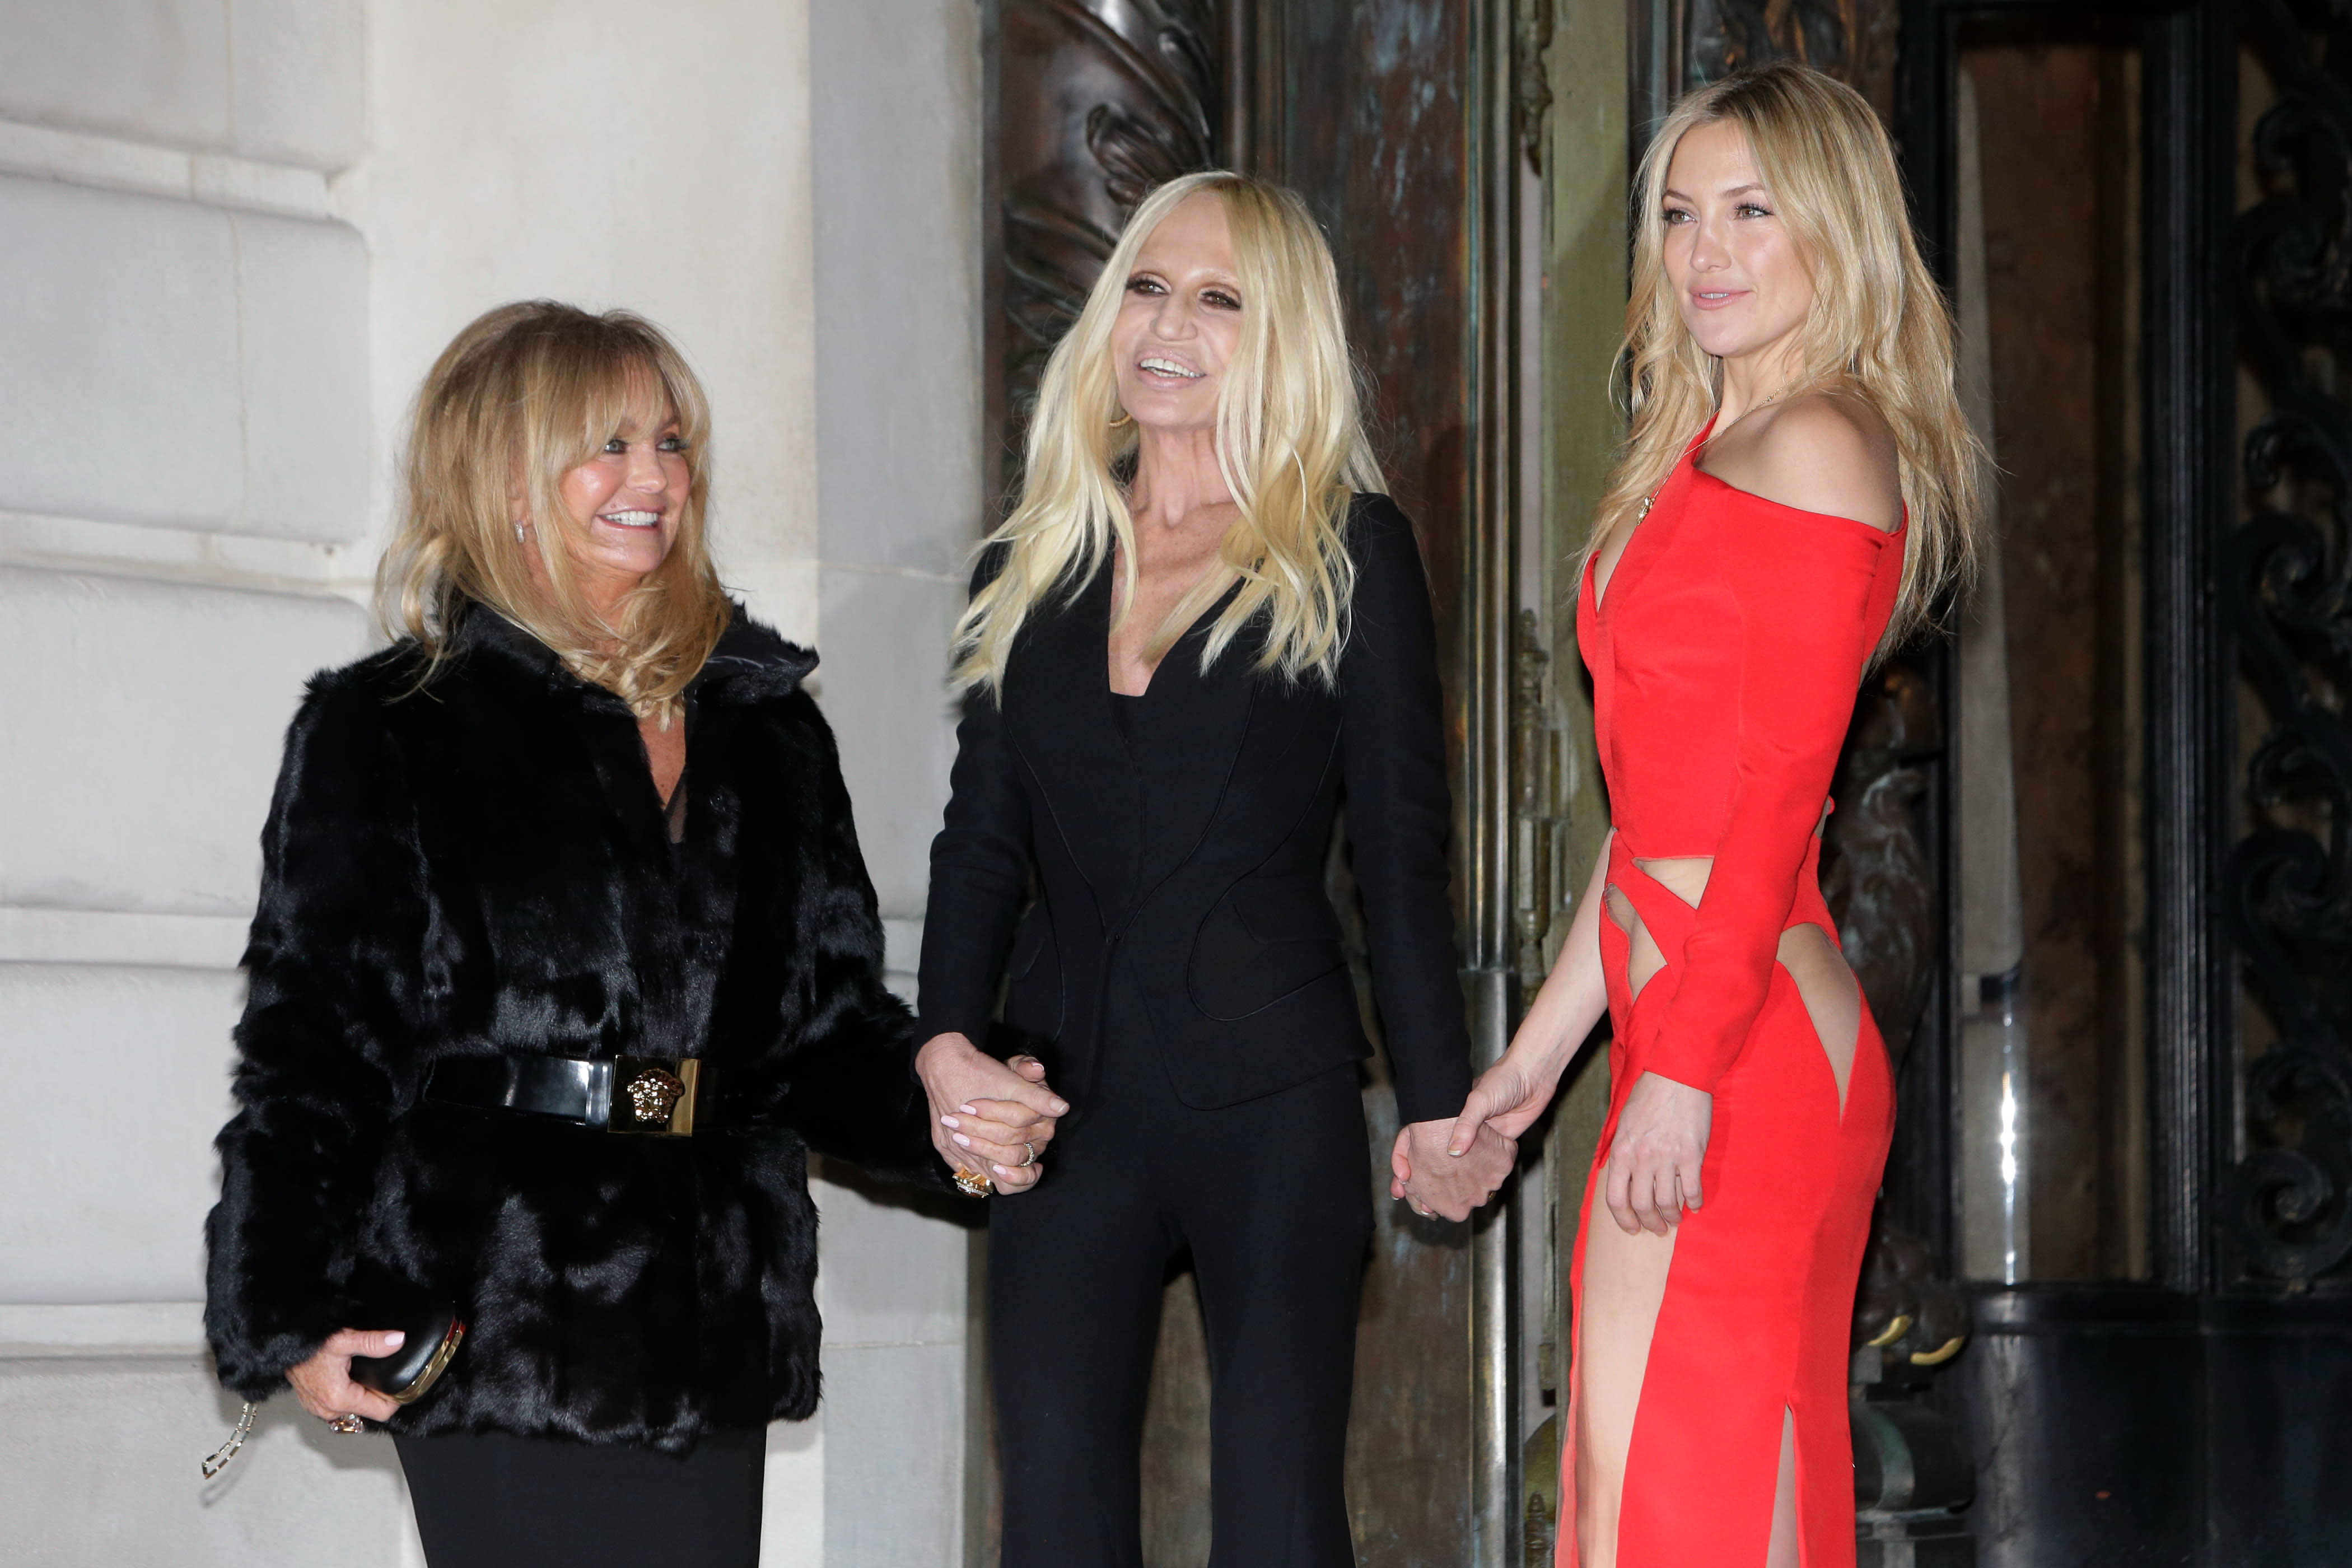 Kate Hudson reveals derriere at Versace, Portman hits Dior